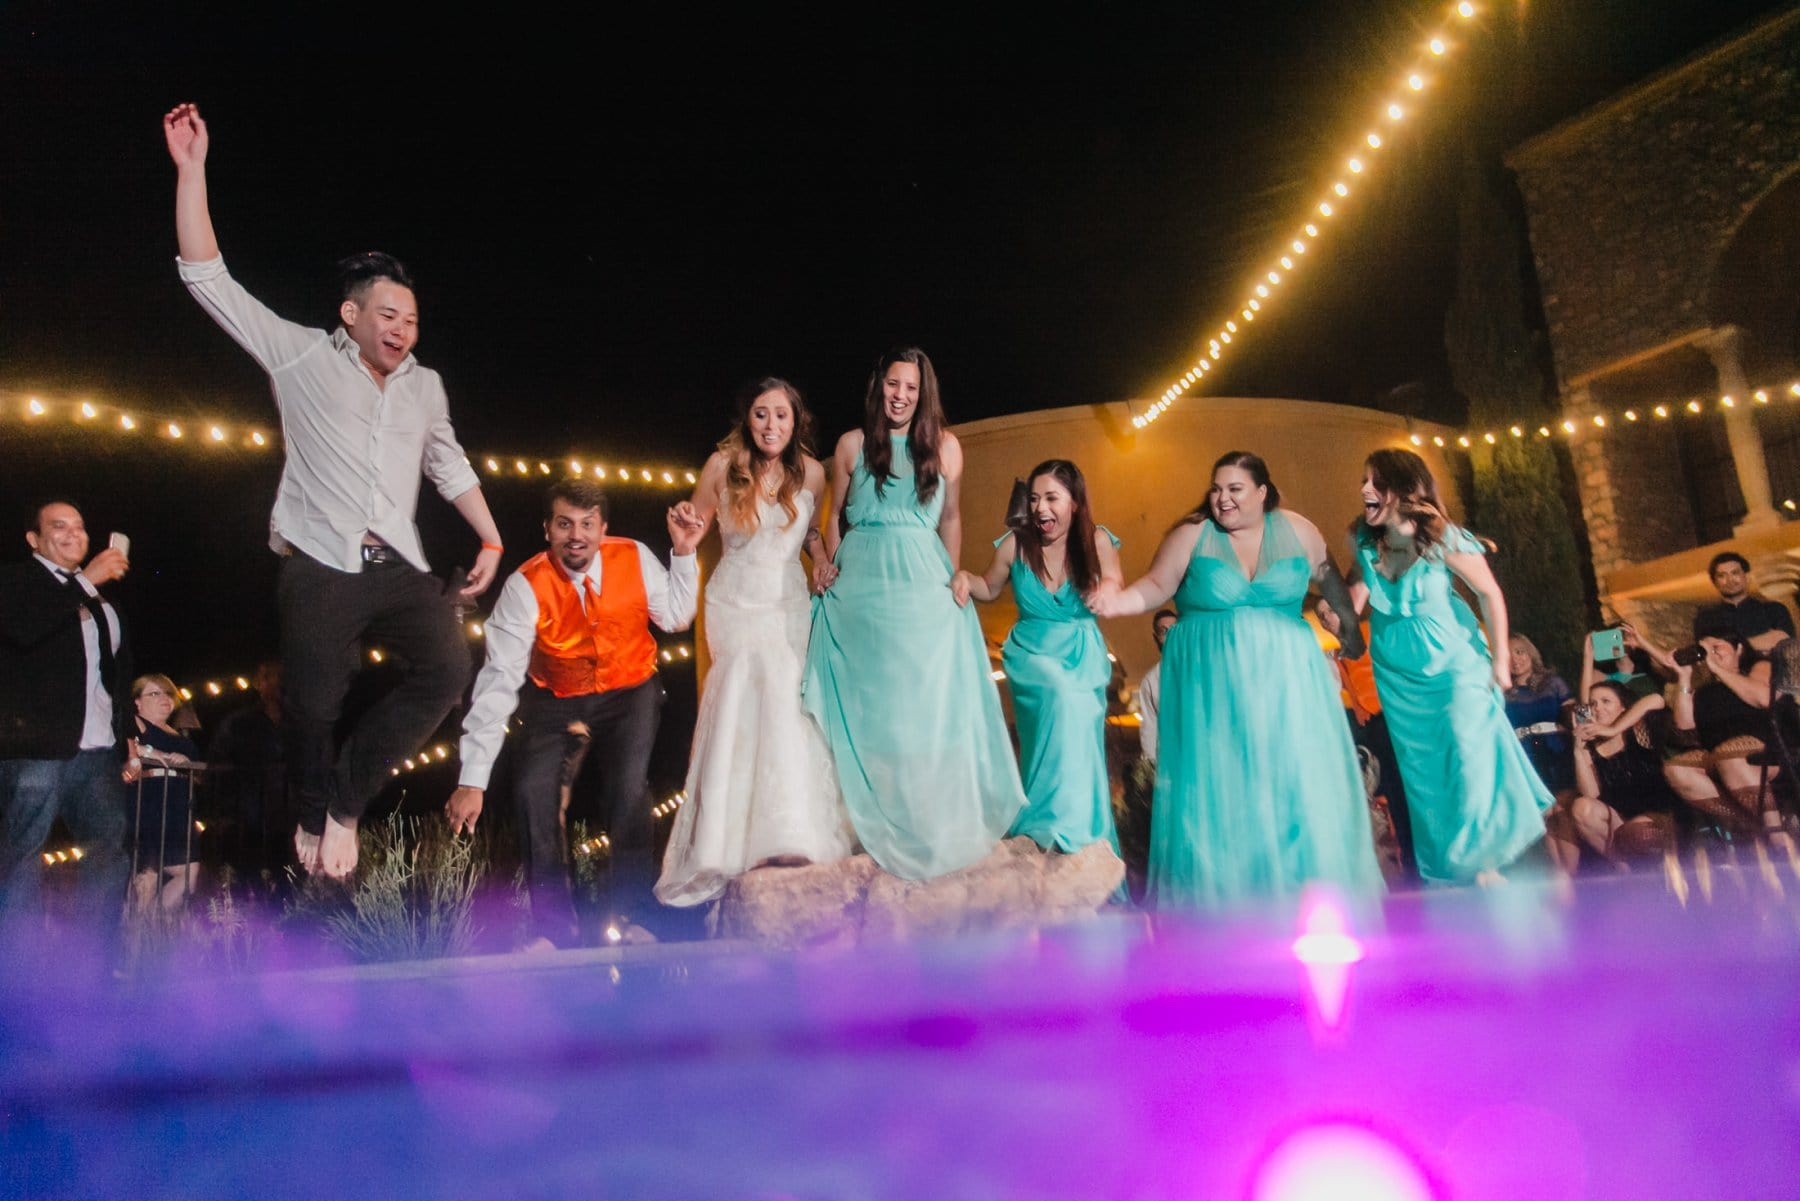 wedding party jumping into pool at reception